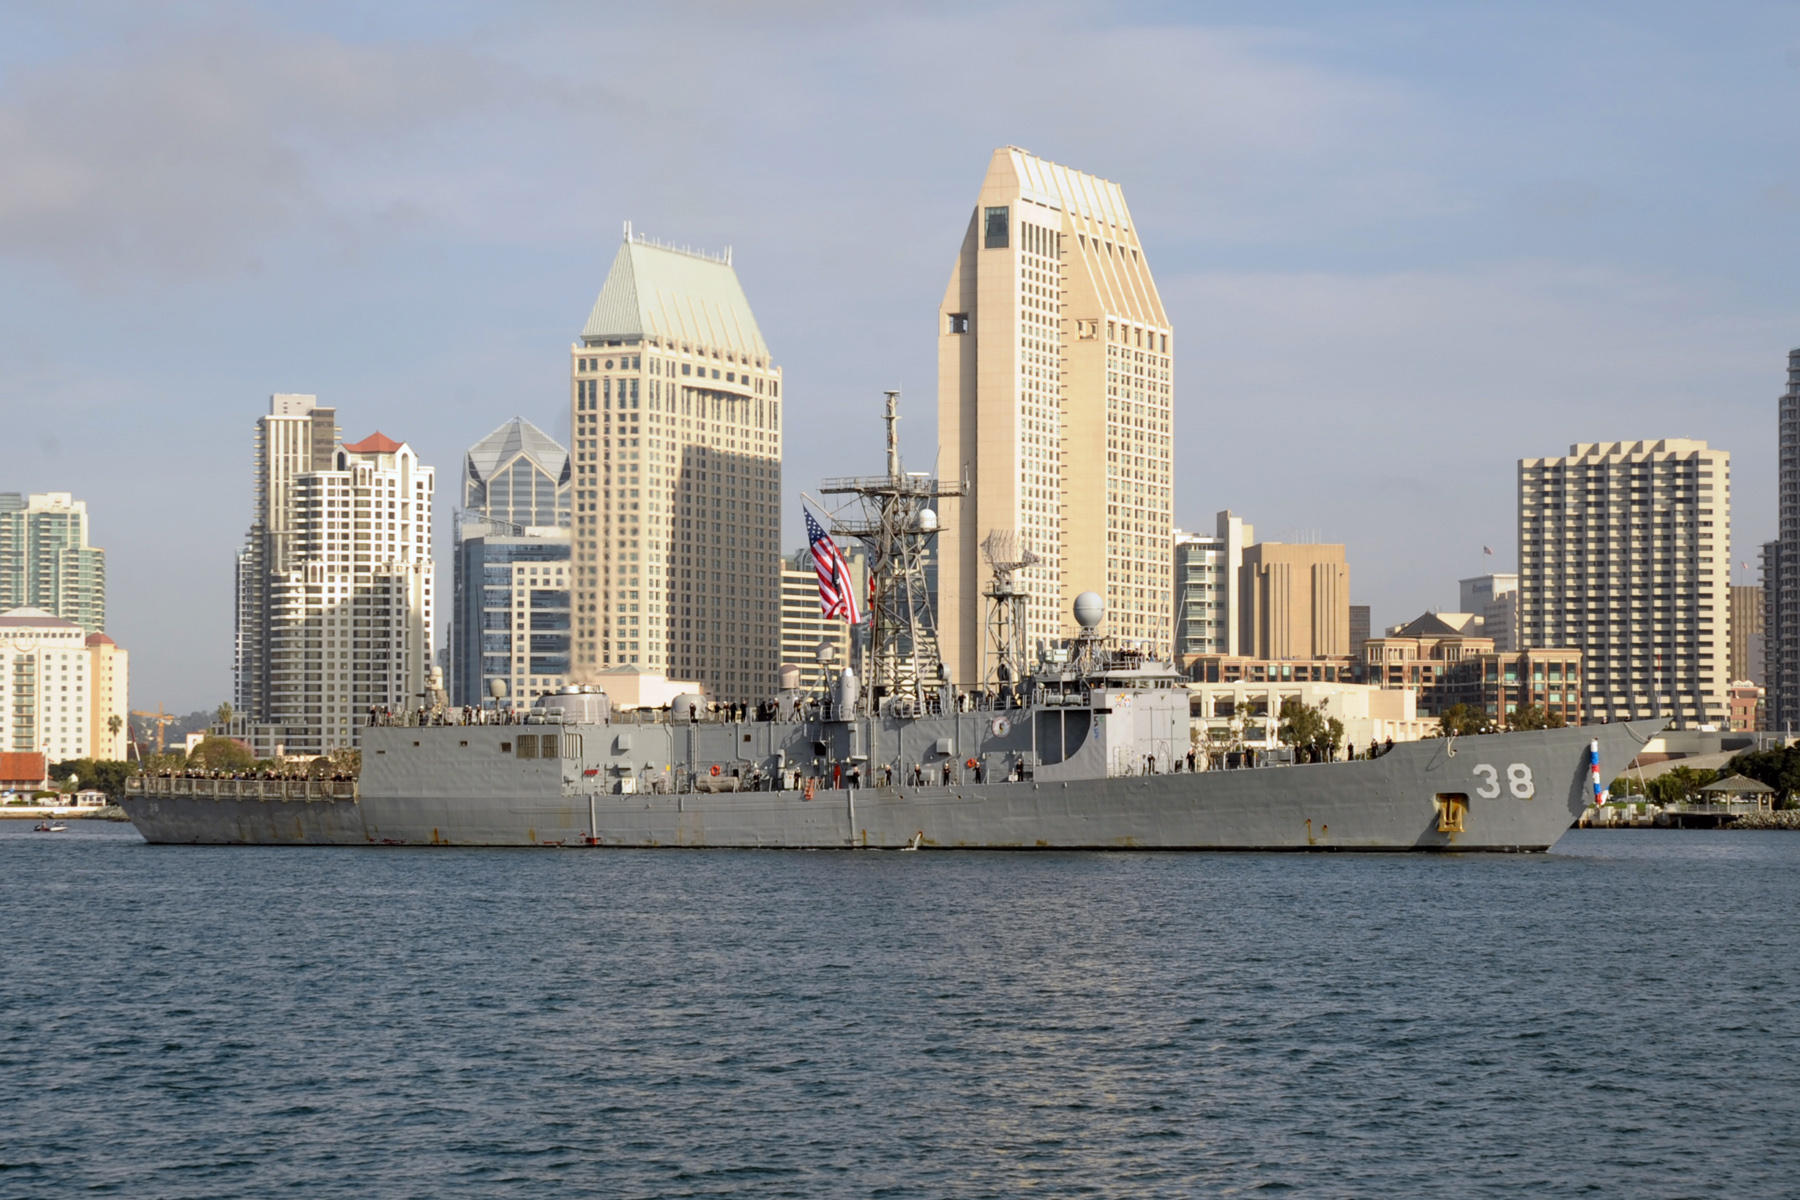 USS CURTS FFG-38 am 04.12.2012 in San DiegoBild: U.S. Navy